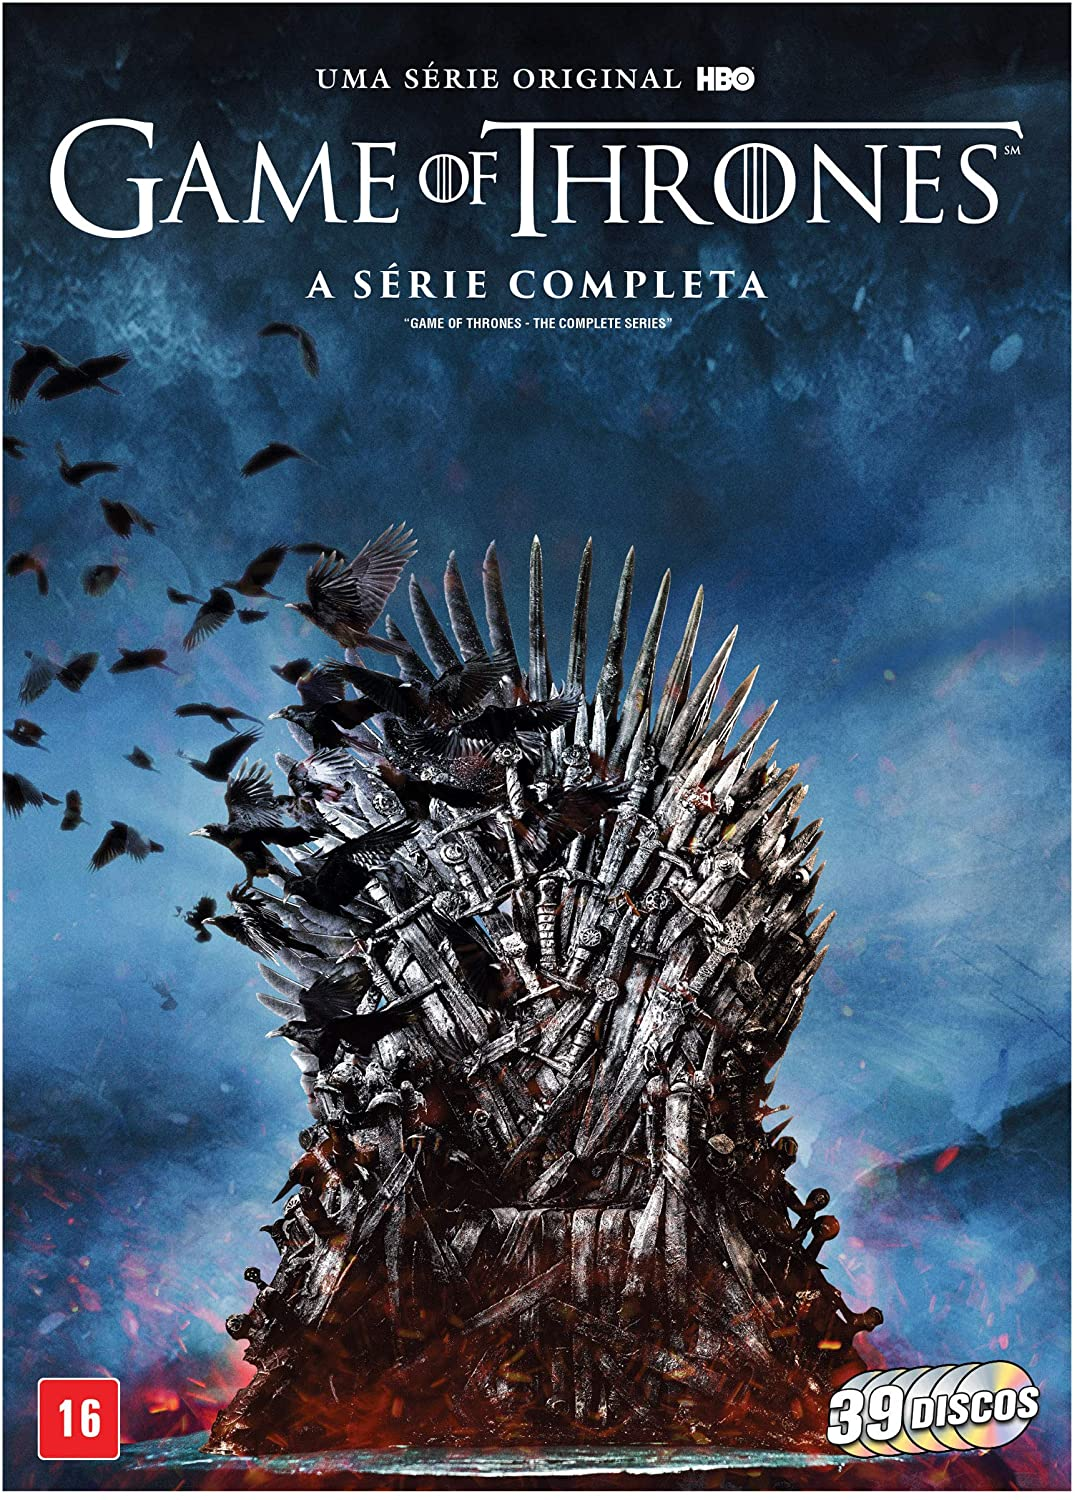 DVD Game of Thrones: A Série Completa - 39 Discos